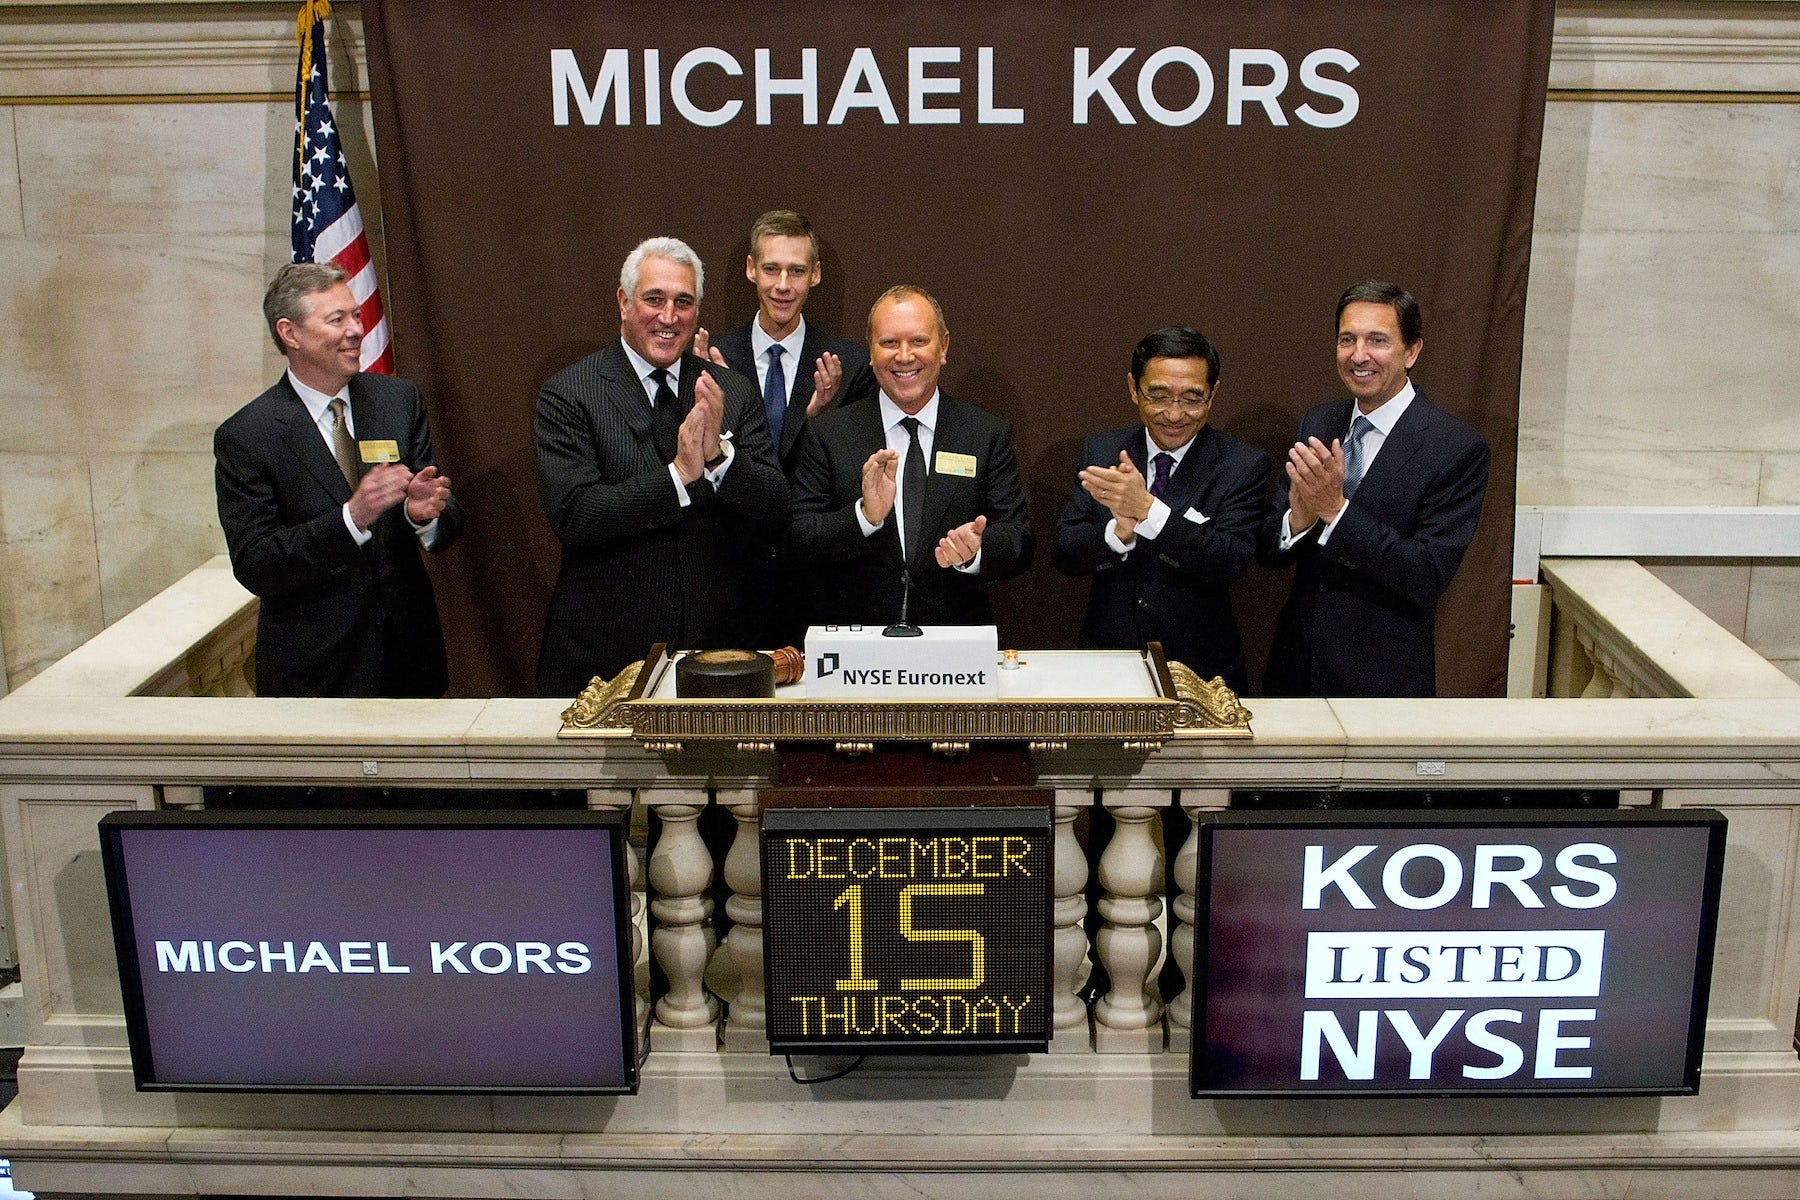 Michael Kors rings the opening bell at the New York Stock Exchange | Photo: Ben Hider/NYSE Euronext via Getty Images